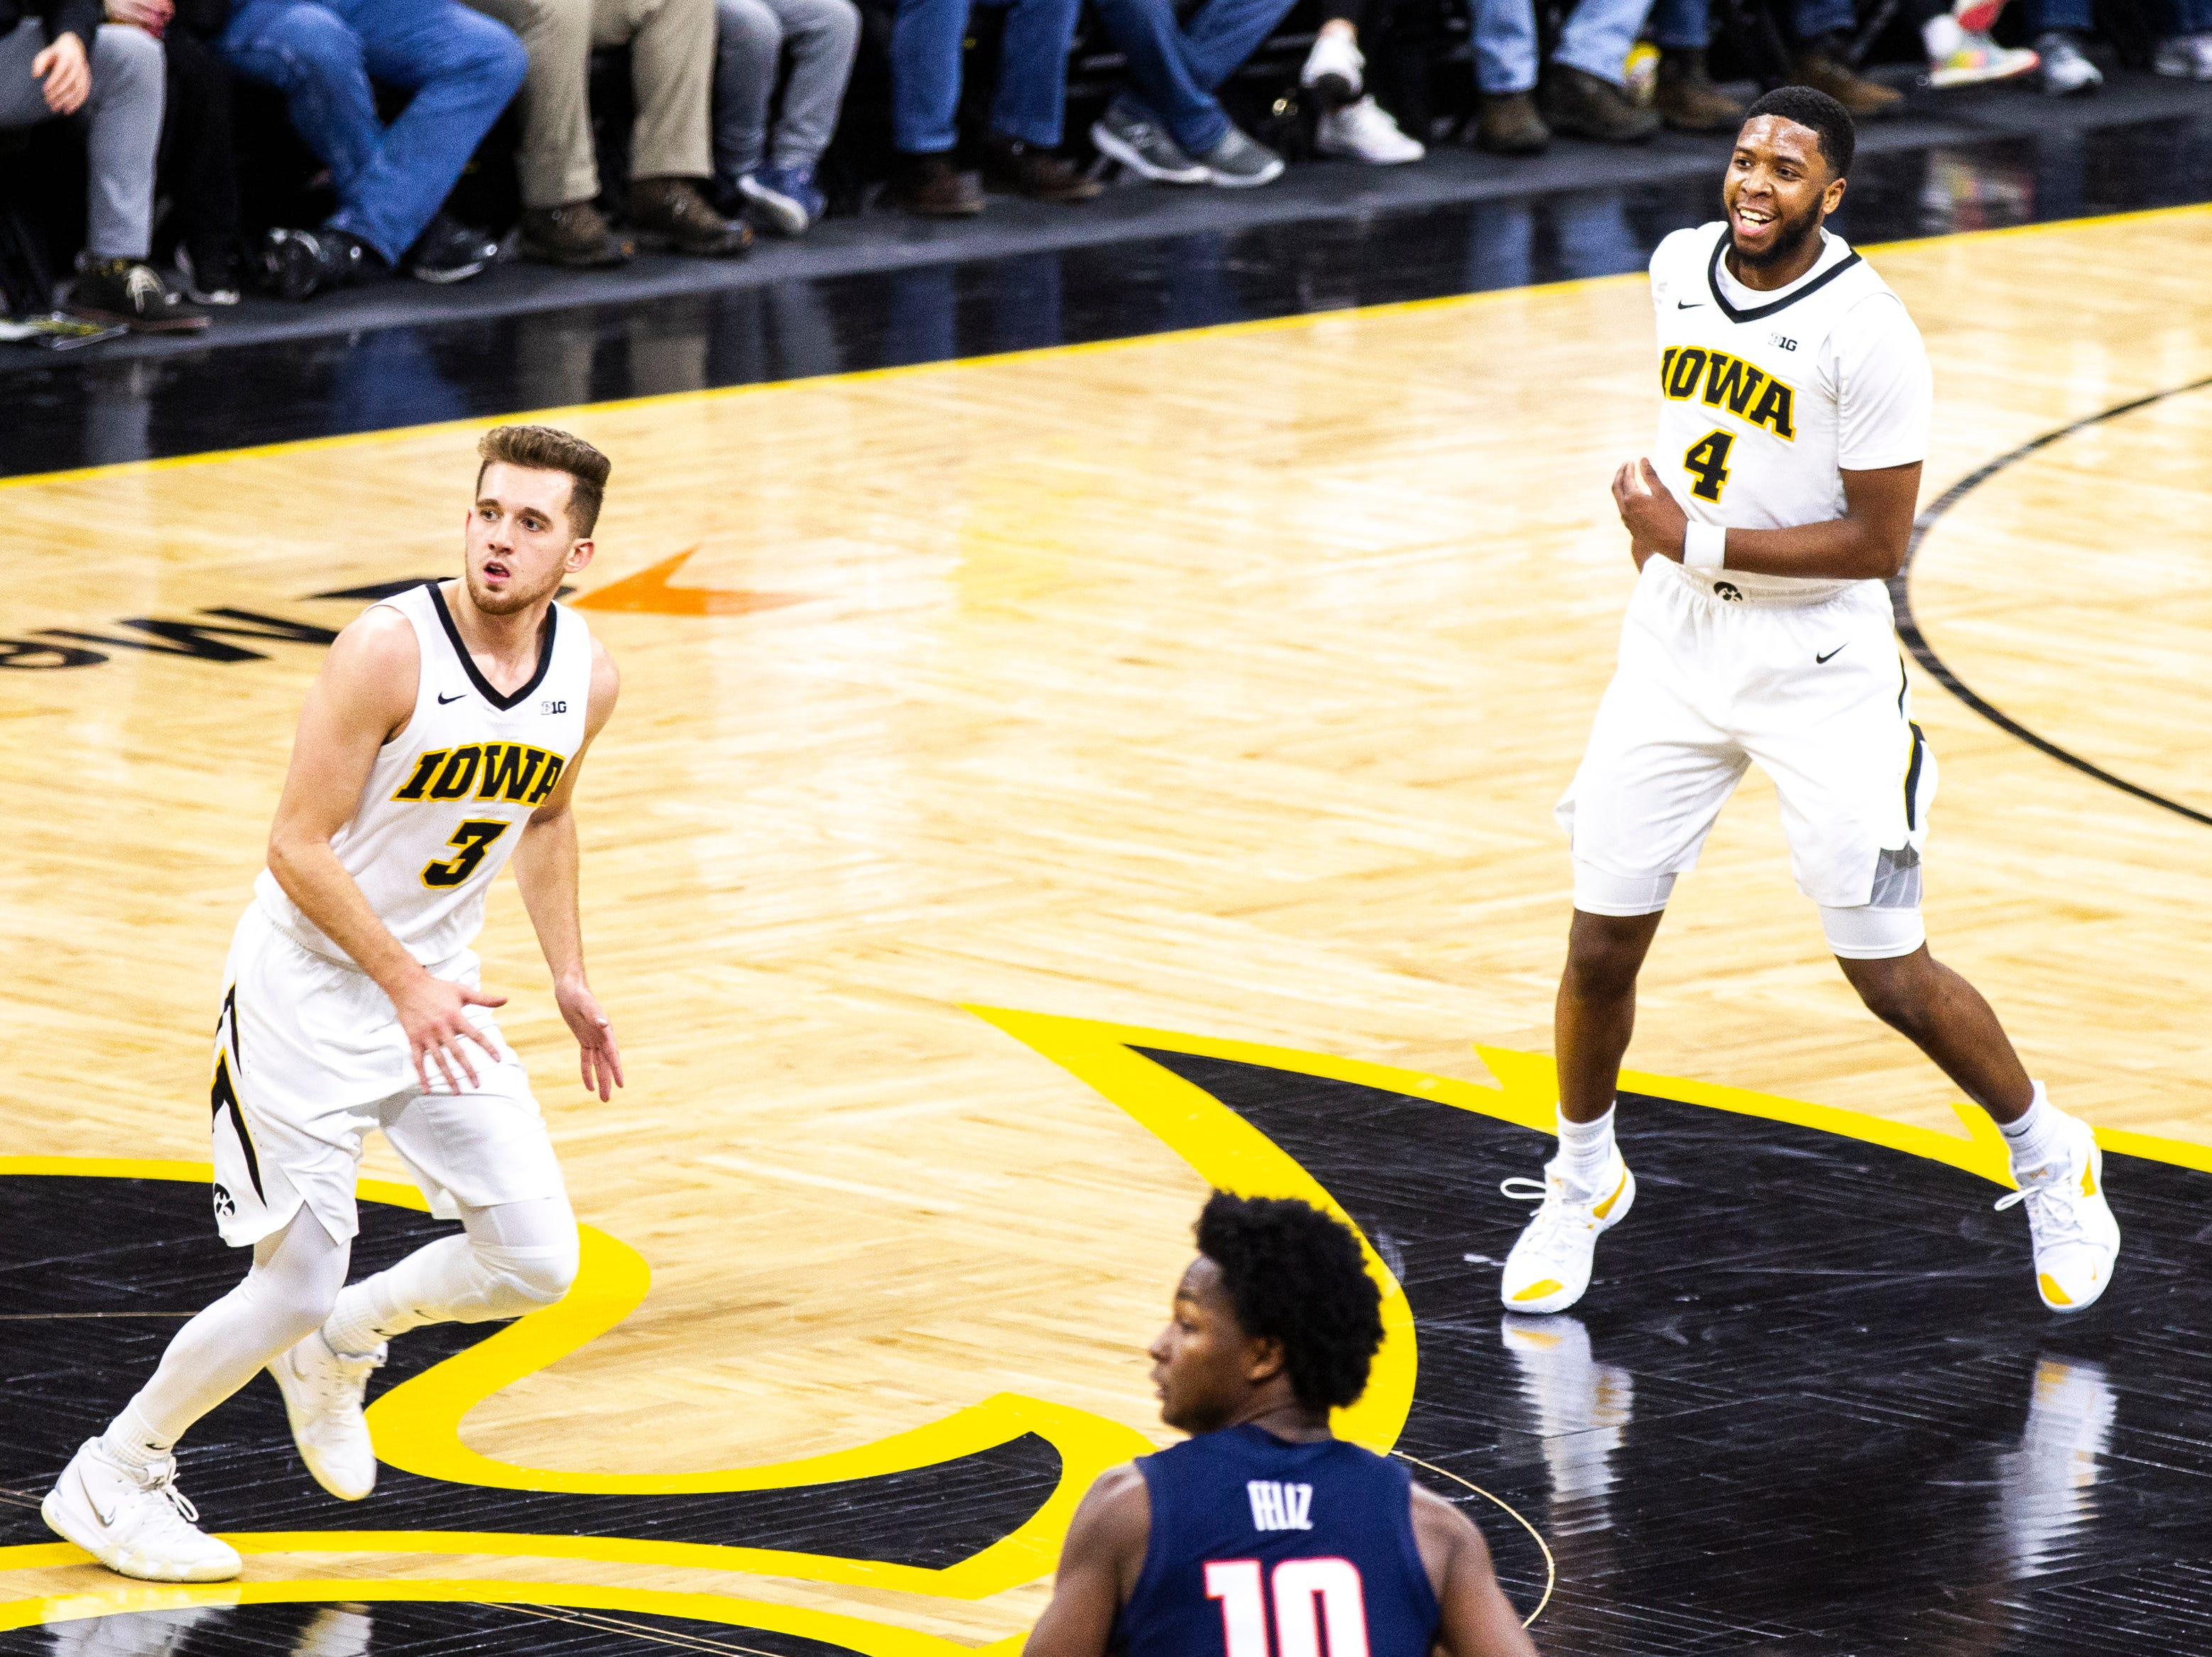 Iowa guard Isaiah Moss (4) smiles while settling in on defense after making a 3-point basket during a NCAA Big Ten Conference men's basketball game on Sunday, Jan. 20, 2019, at Carver-Hawkeye Arena in Iowa City, Iowa.